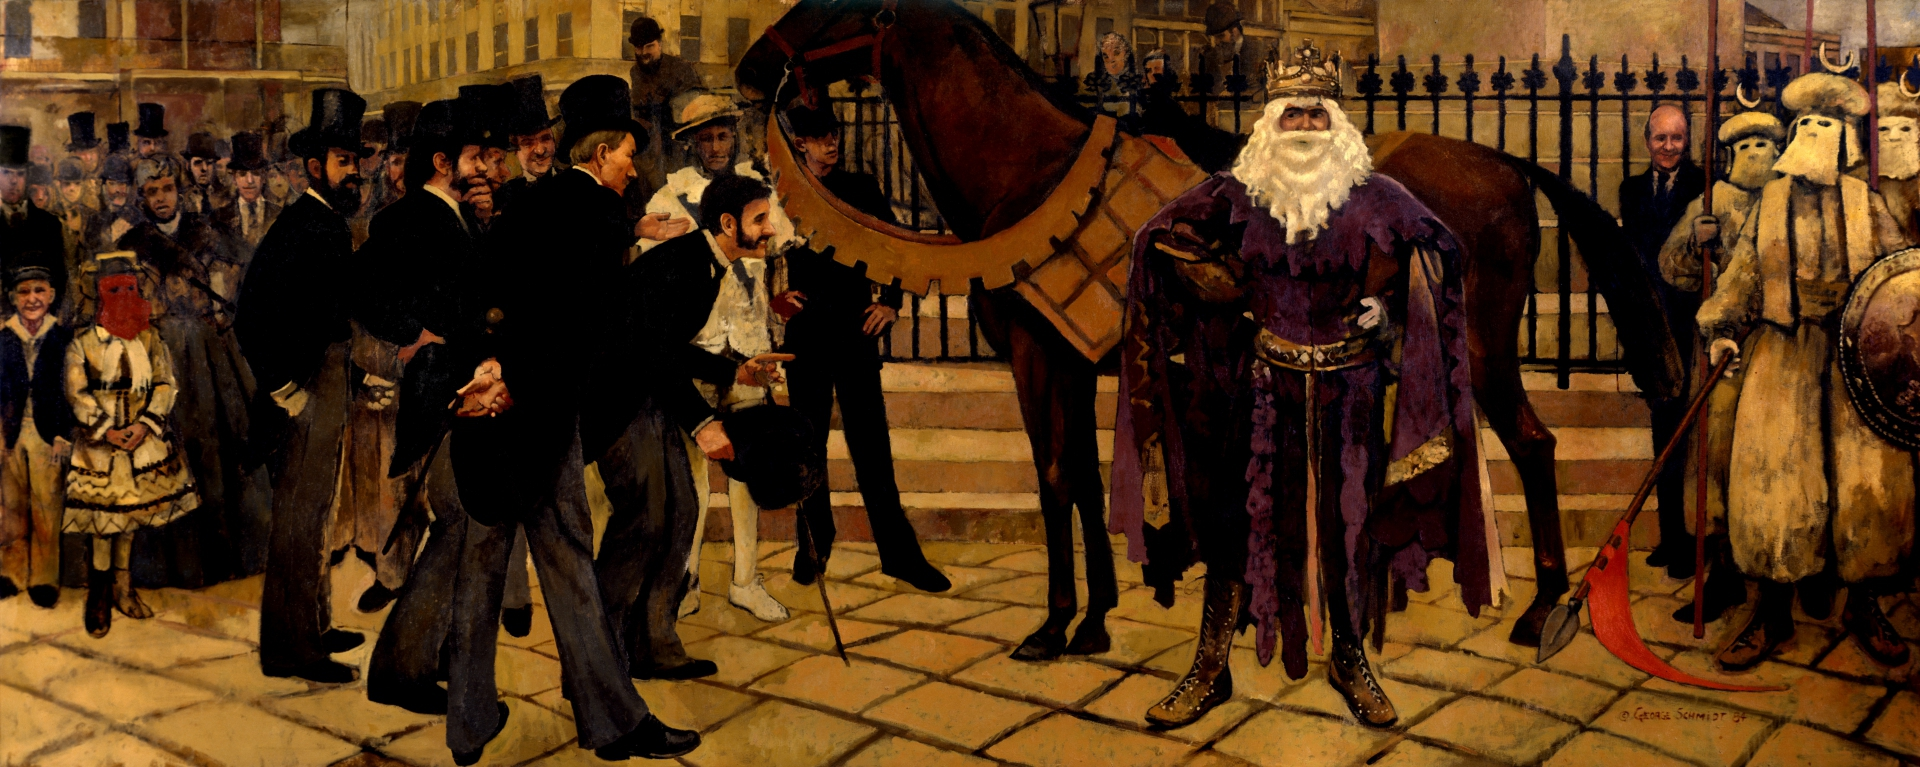 The First Rex, King of Carnival 1872 :: Oil on canvas